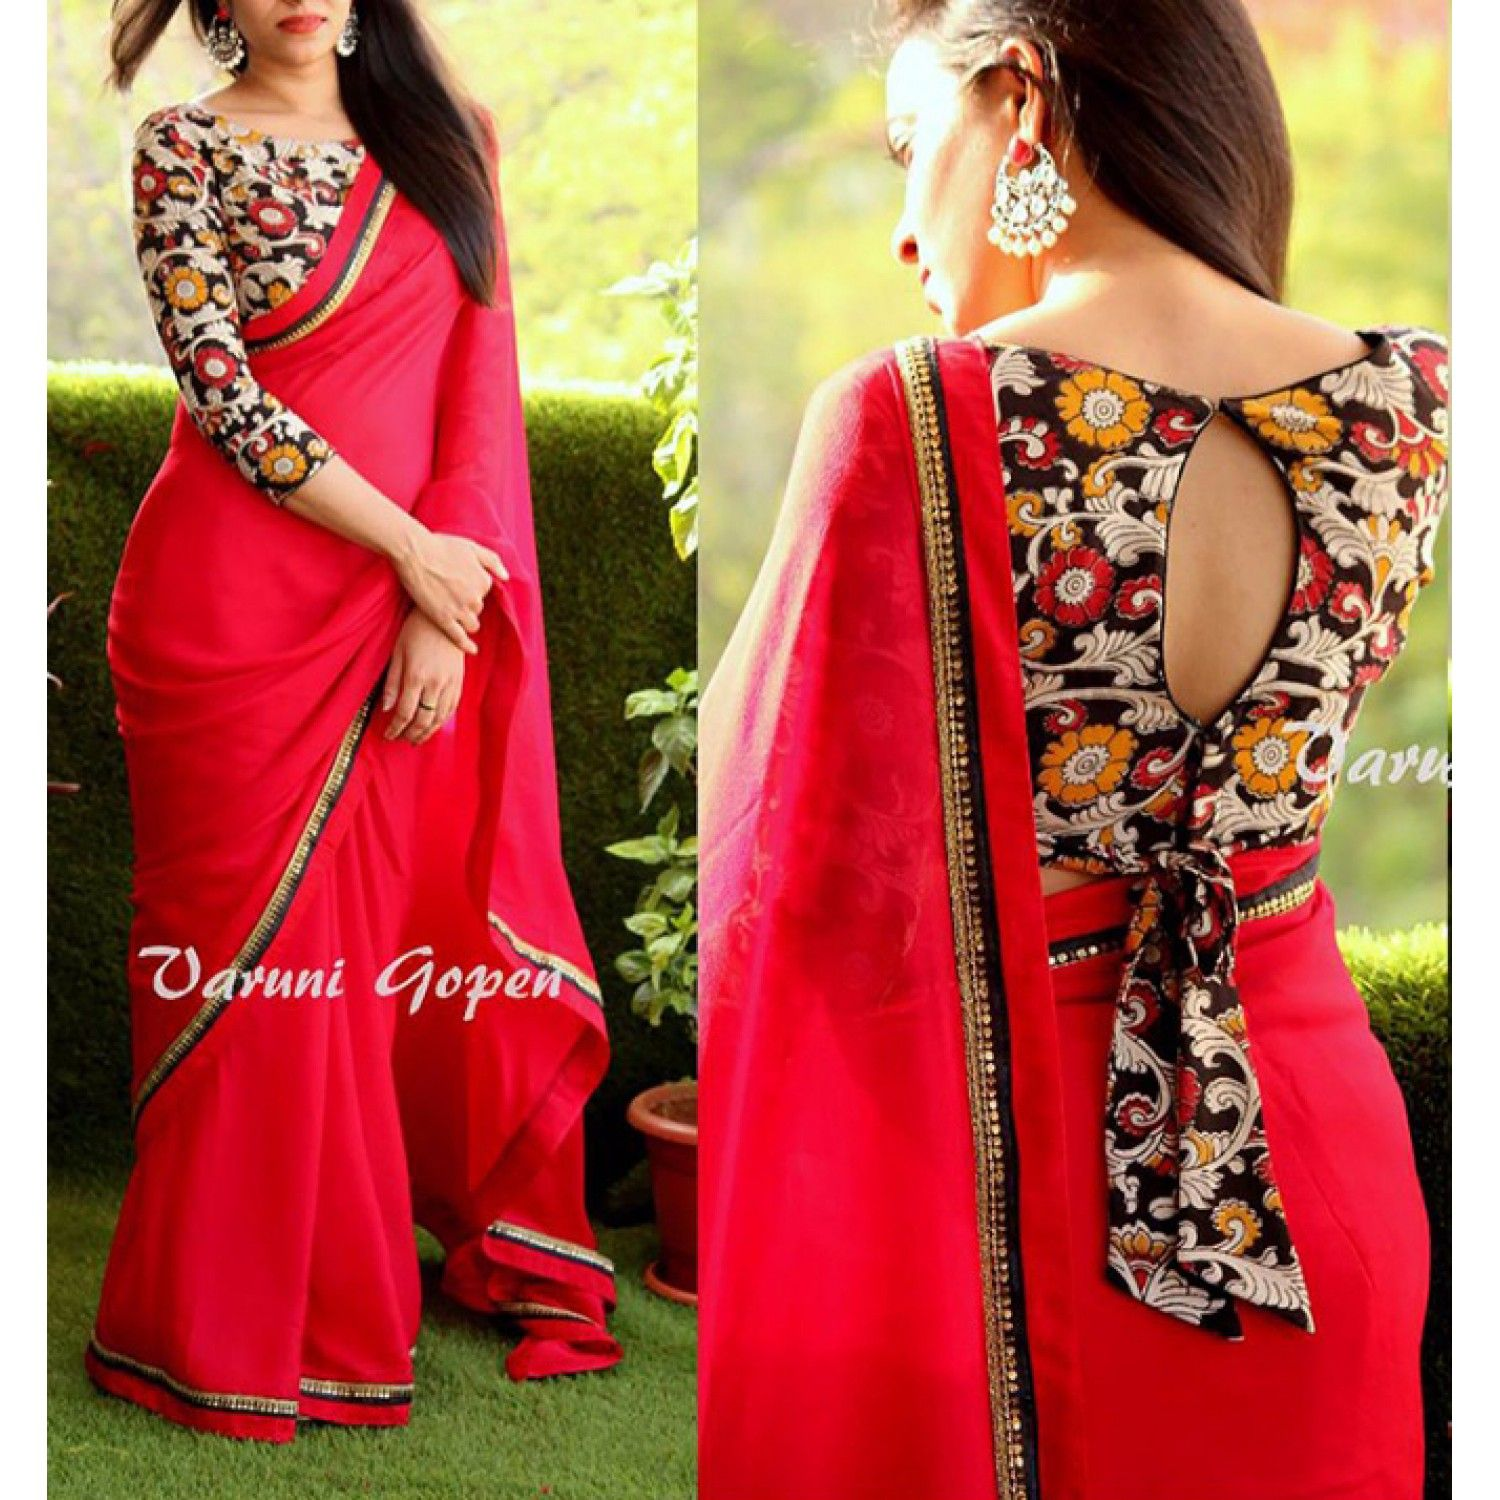 Blouse designs saree blouse back designs blouses neck designs 30 jpg - Gorgeous Red Partywear Saree With Fancy Blouse Designer Saree Blousesdesigner